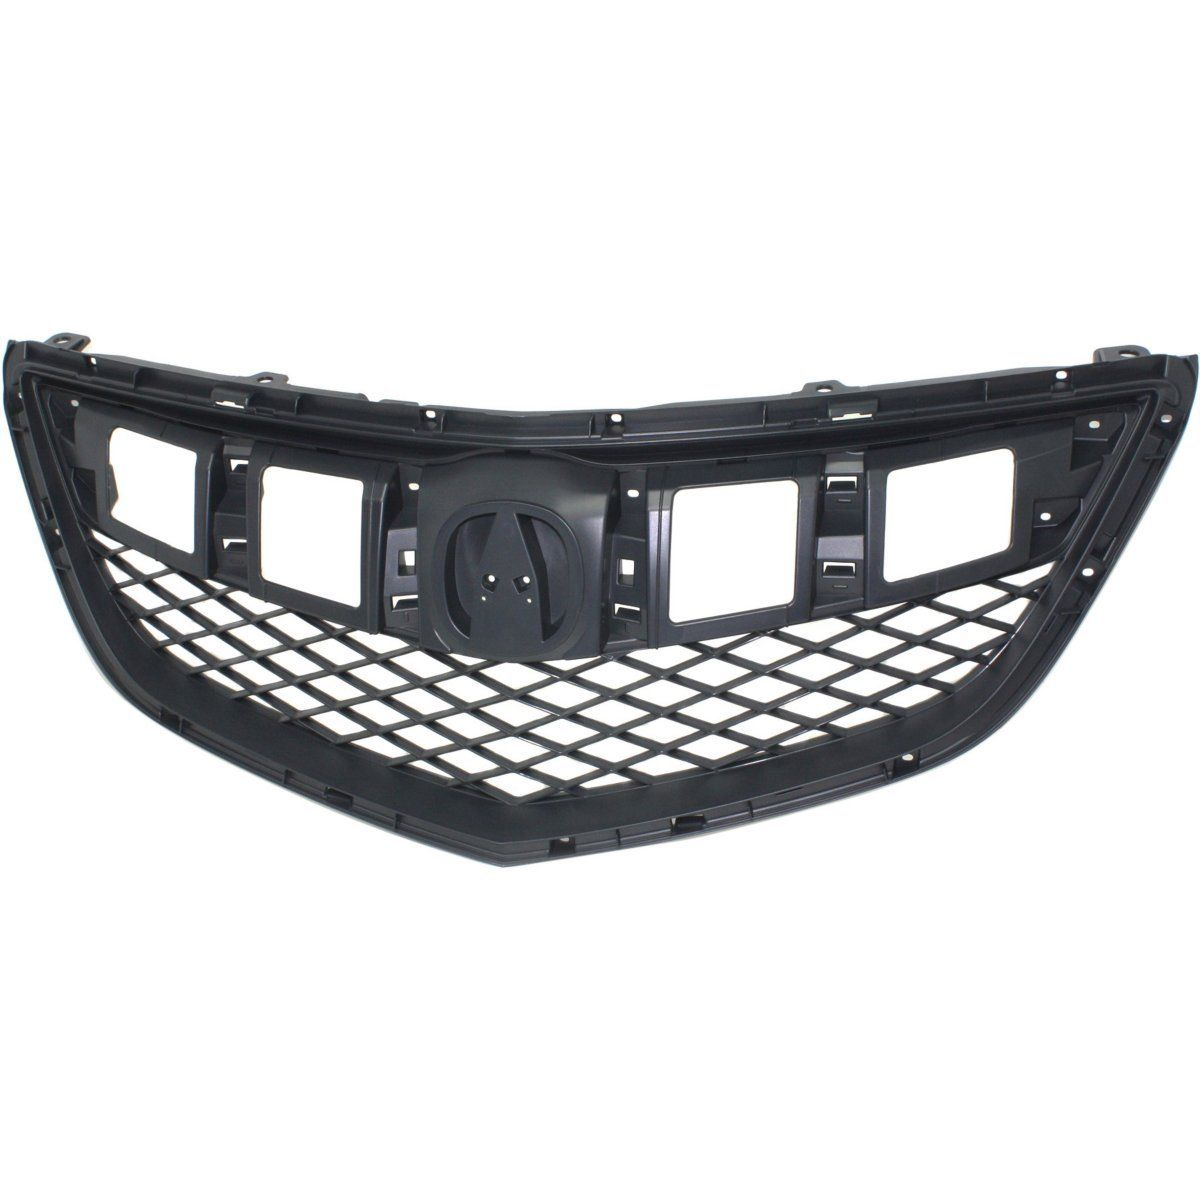 Grille For 2013-2015 Acura RDX Textured Gray Plastic CAPA